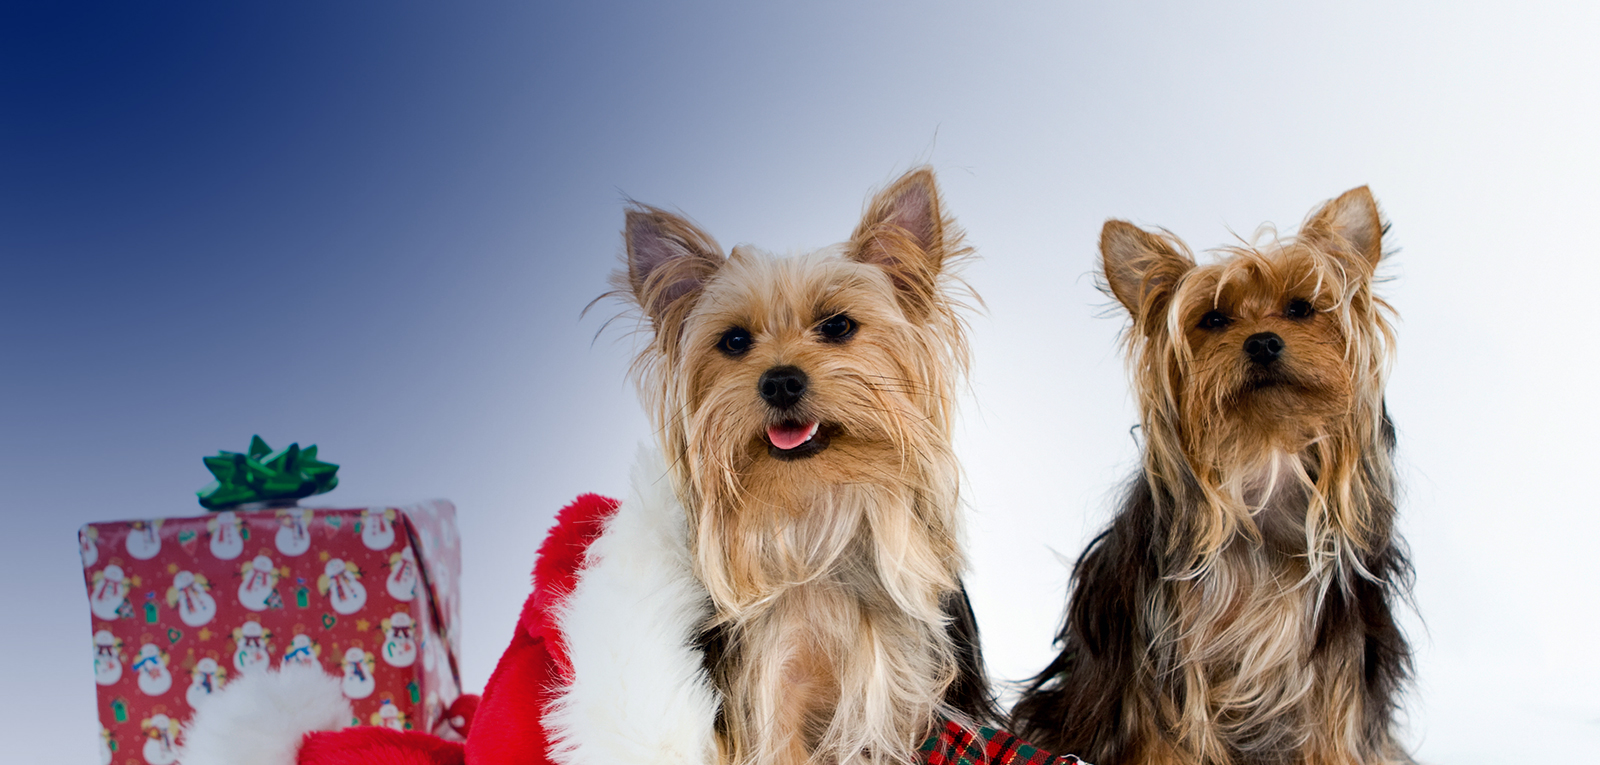 https://www.dutchpoint.org/images/default-source/Homepage-Banners/christmas-dogs.jpg?sfvrsn=0